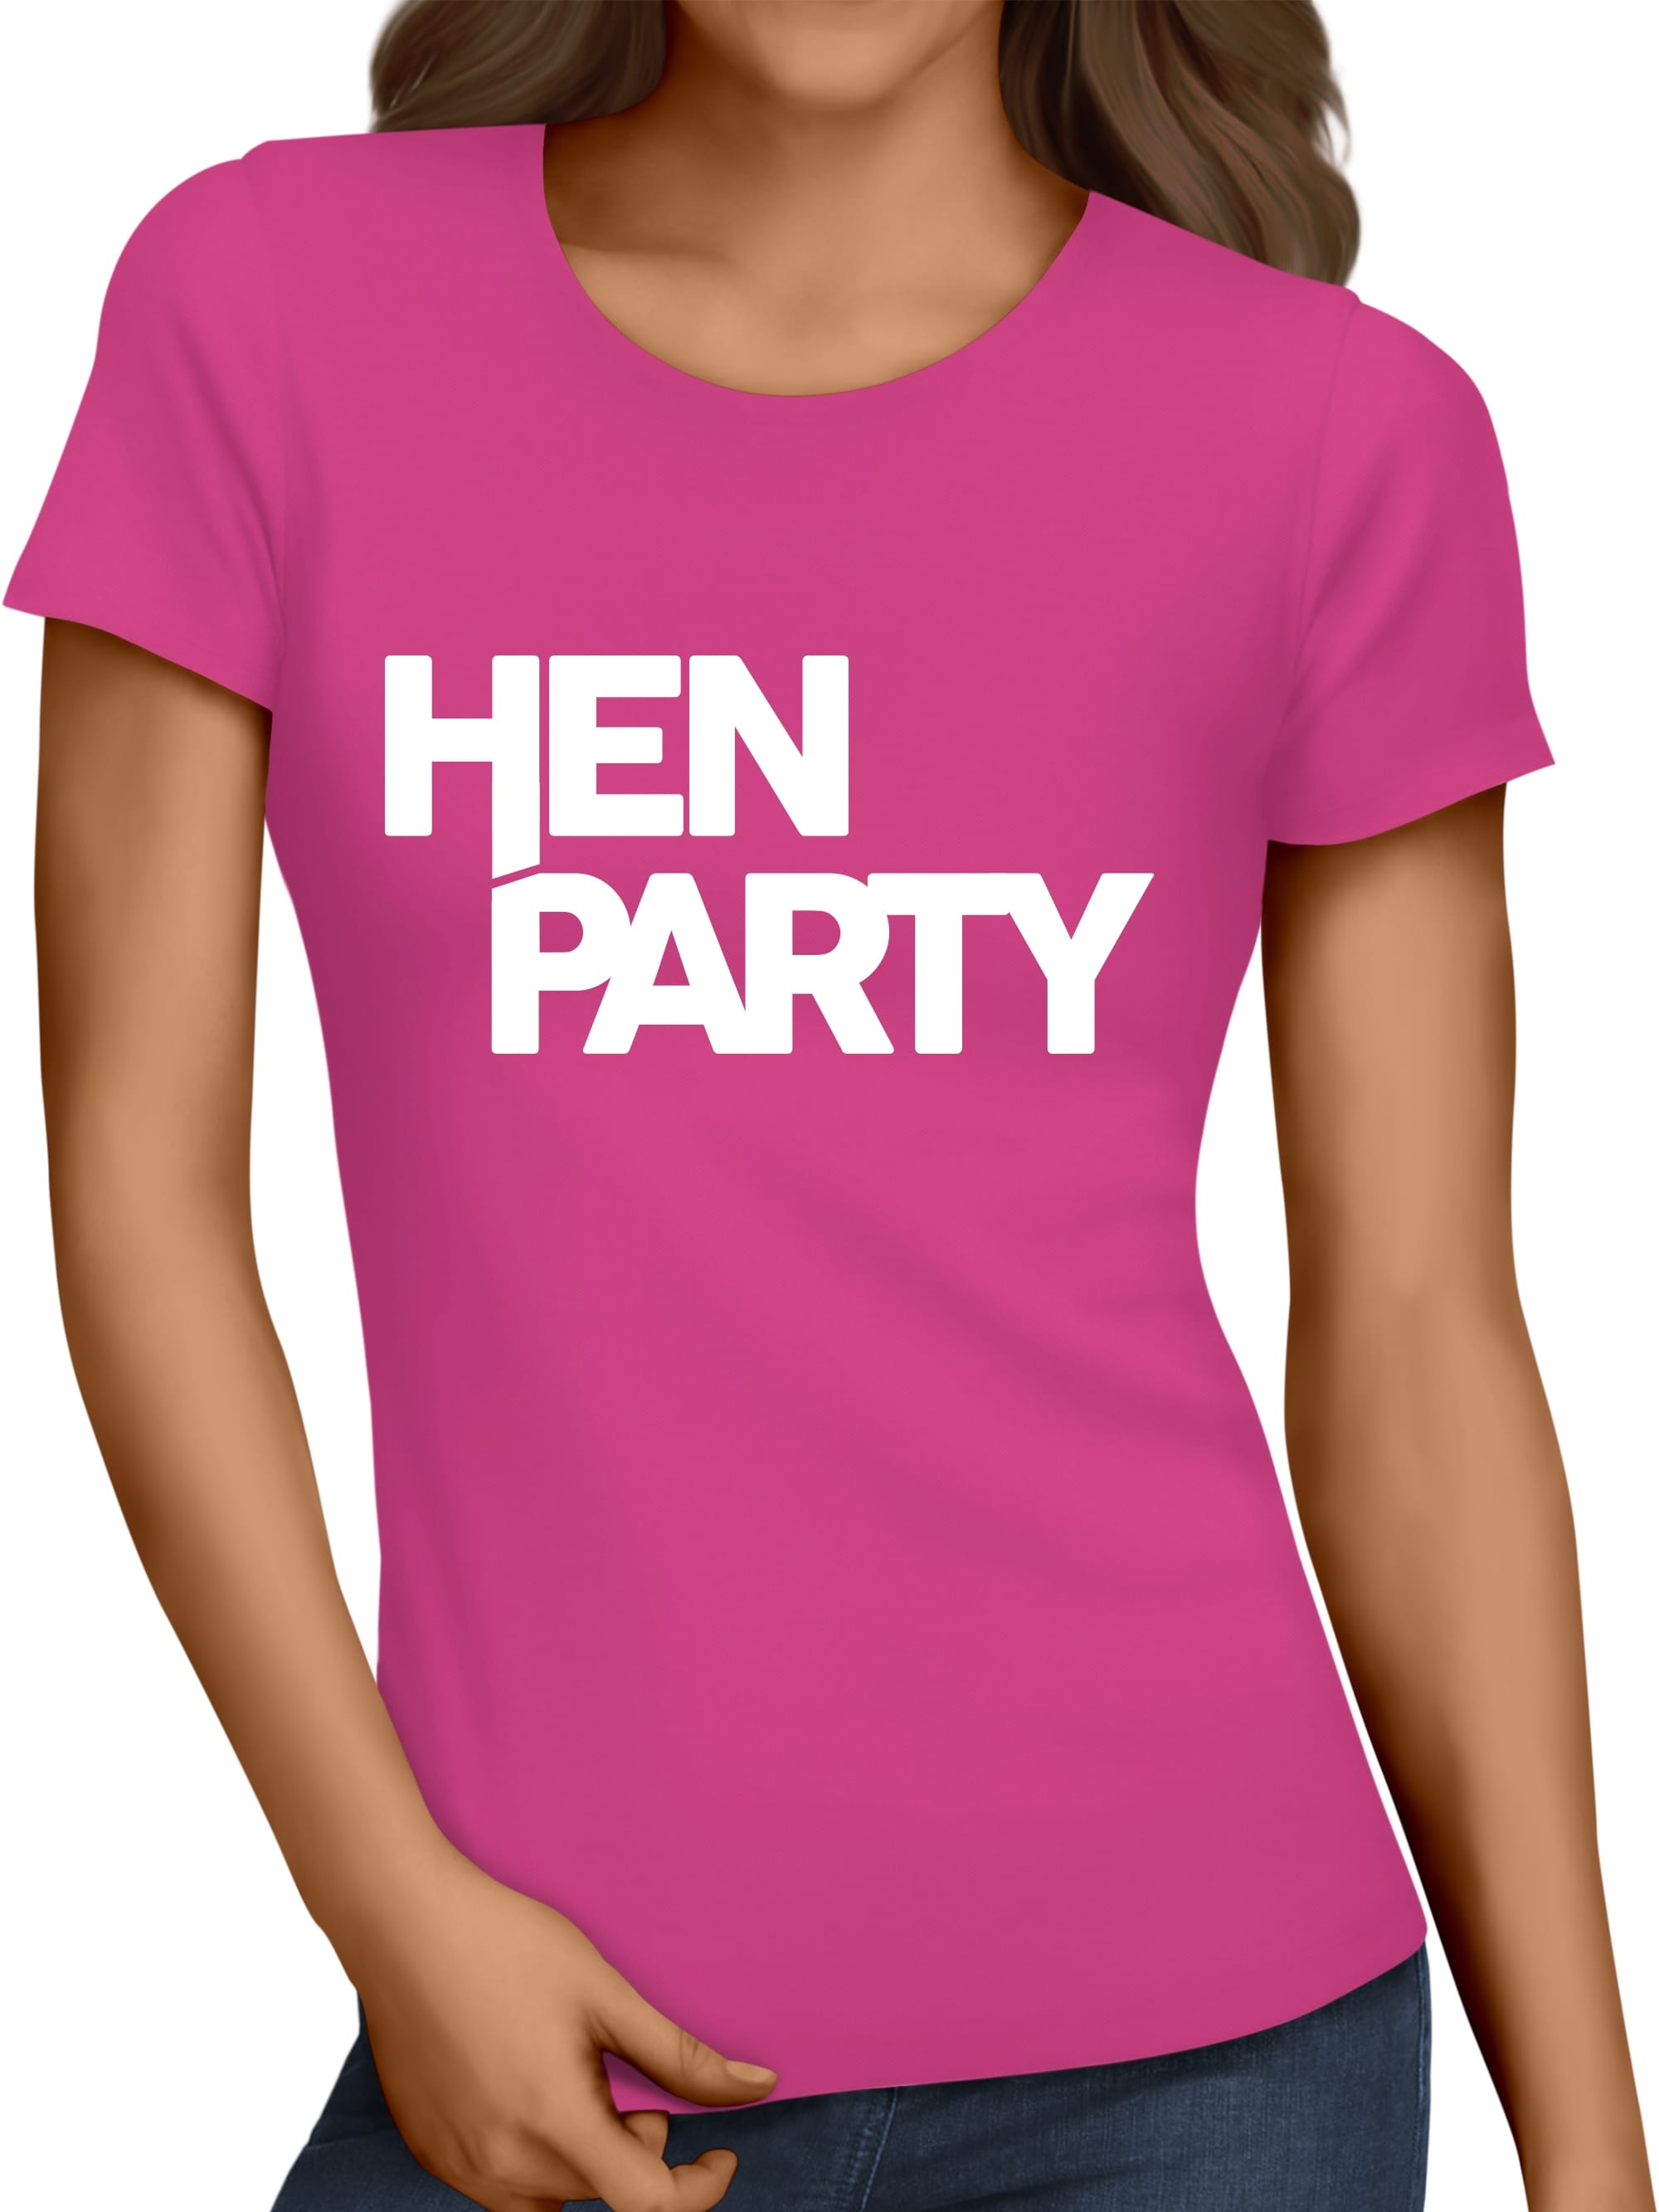 Cheap hen party personalised t shirts and vest tops hen for Hen party t shirts